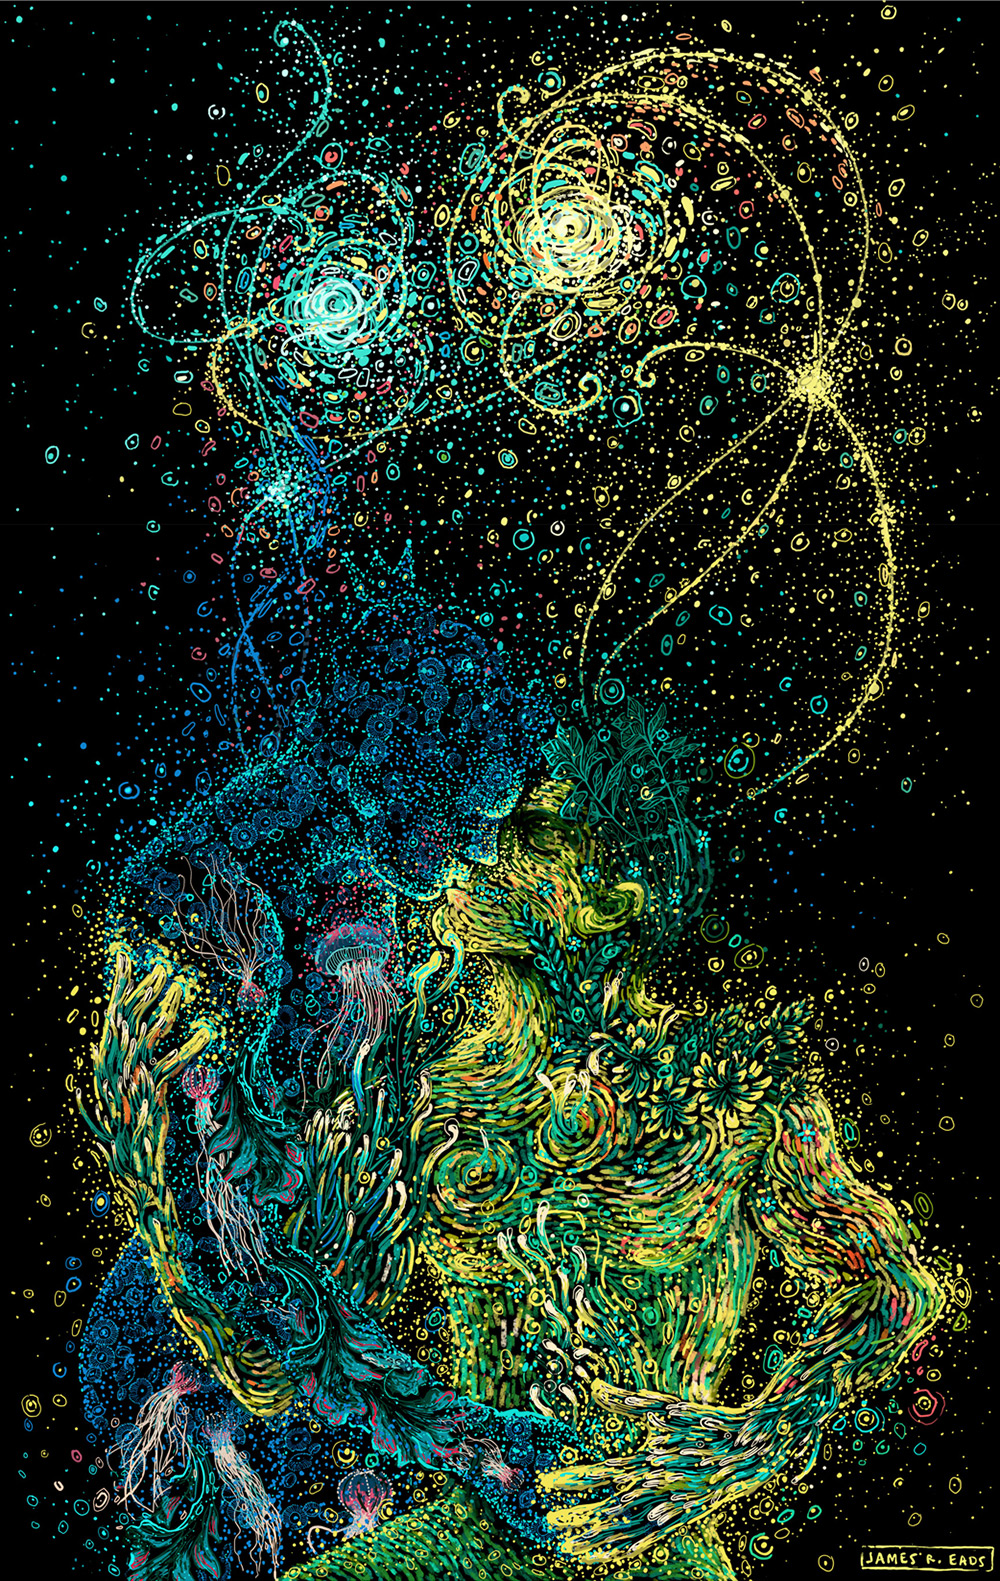 Swirling Illustrations by James R. Eads Explore Human Connections and the Natural World | Colossal